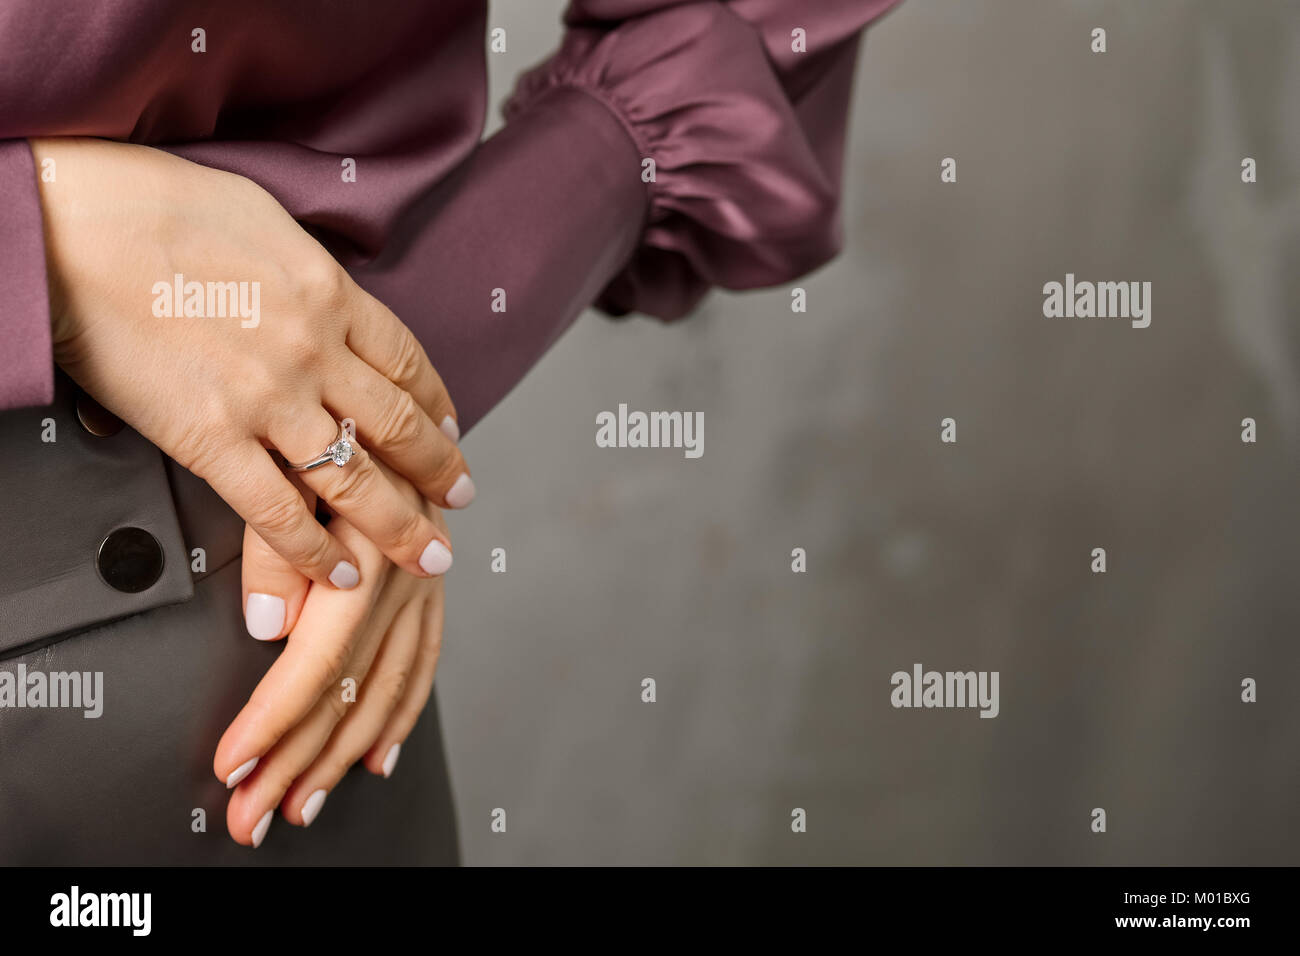 close up diamond engagement ring stock photos amp close up